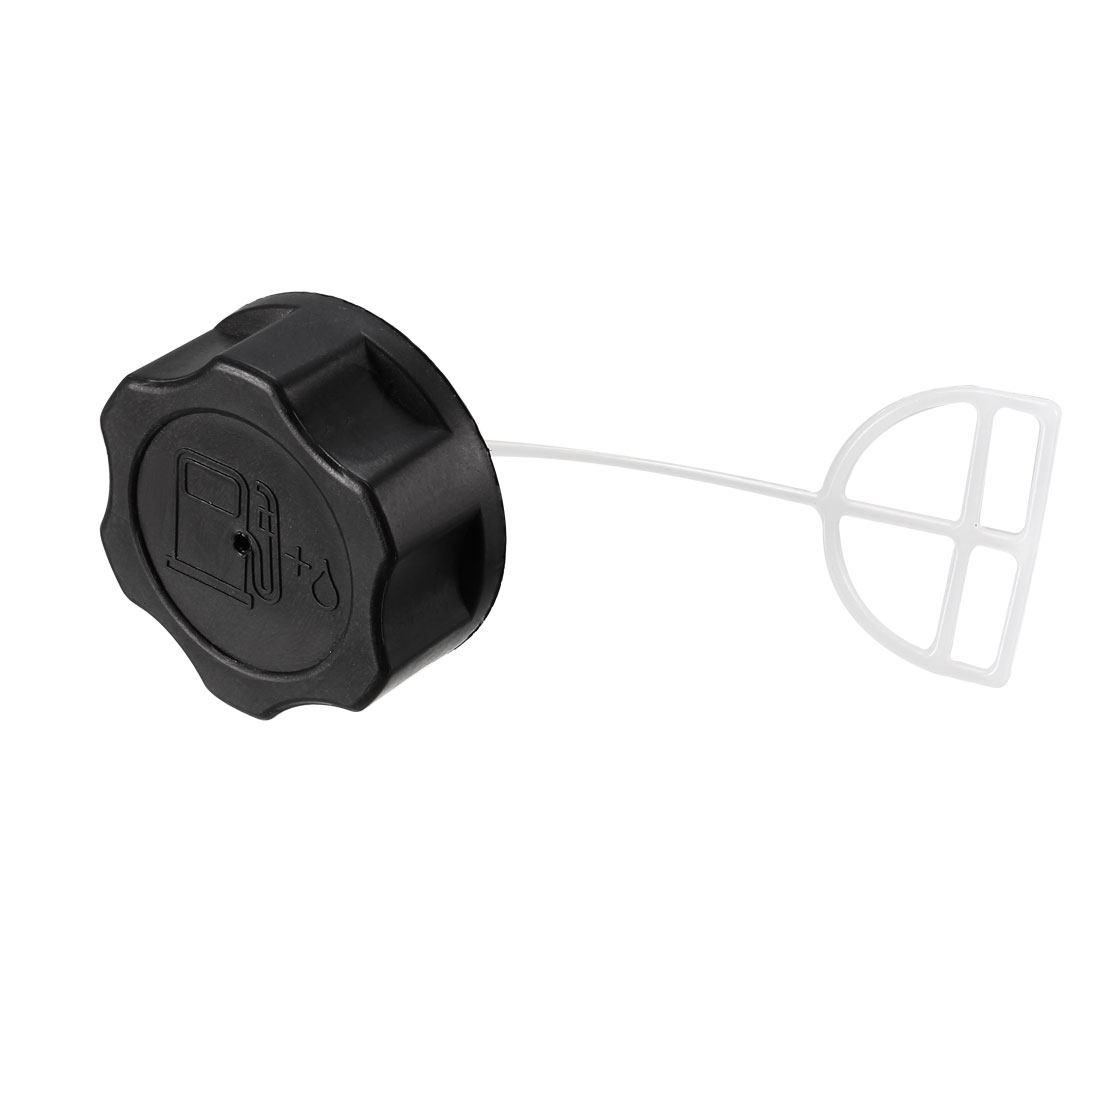 17620-ZM3-063 Fuel Cap Assembly Replacement for Gas Powered Chainsaws